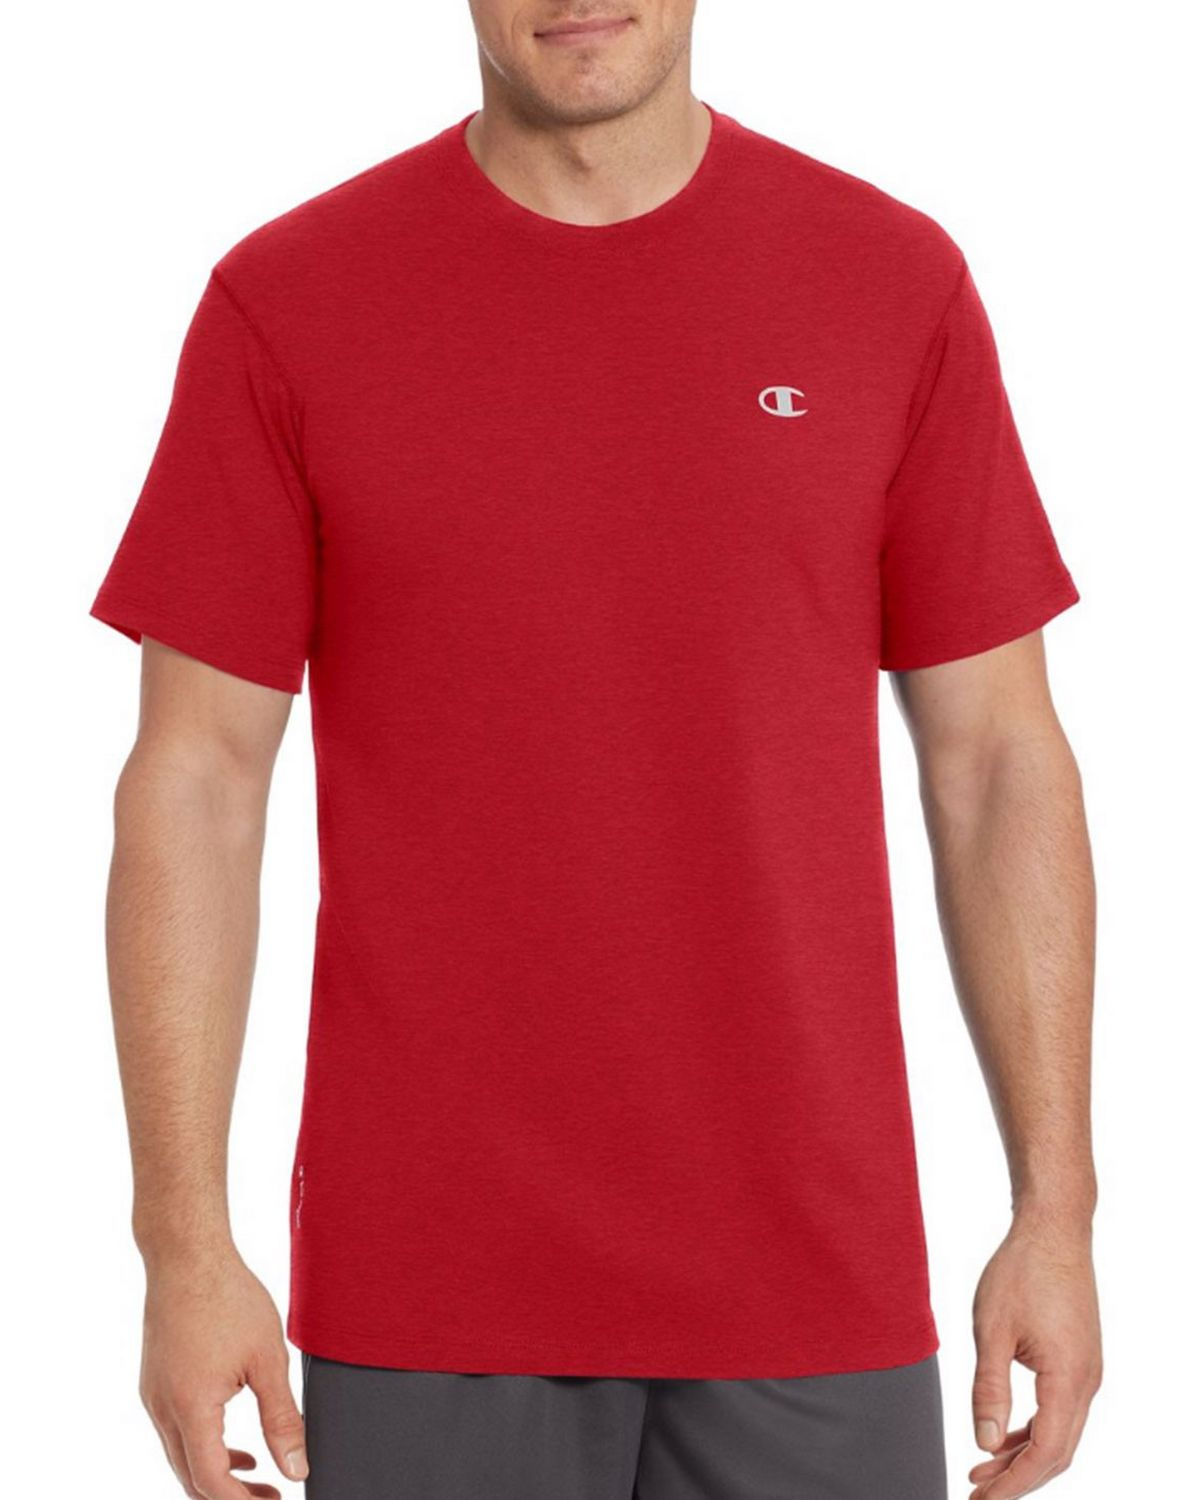 Champion T0351 Vapor Mens Cotton Tee - Navy - M T0351